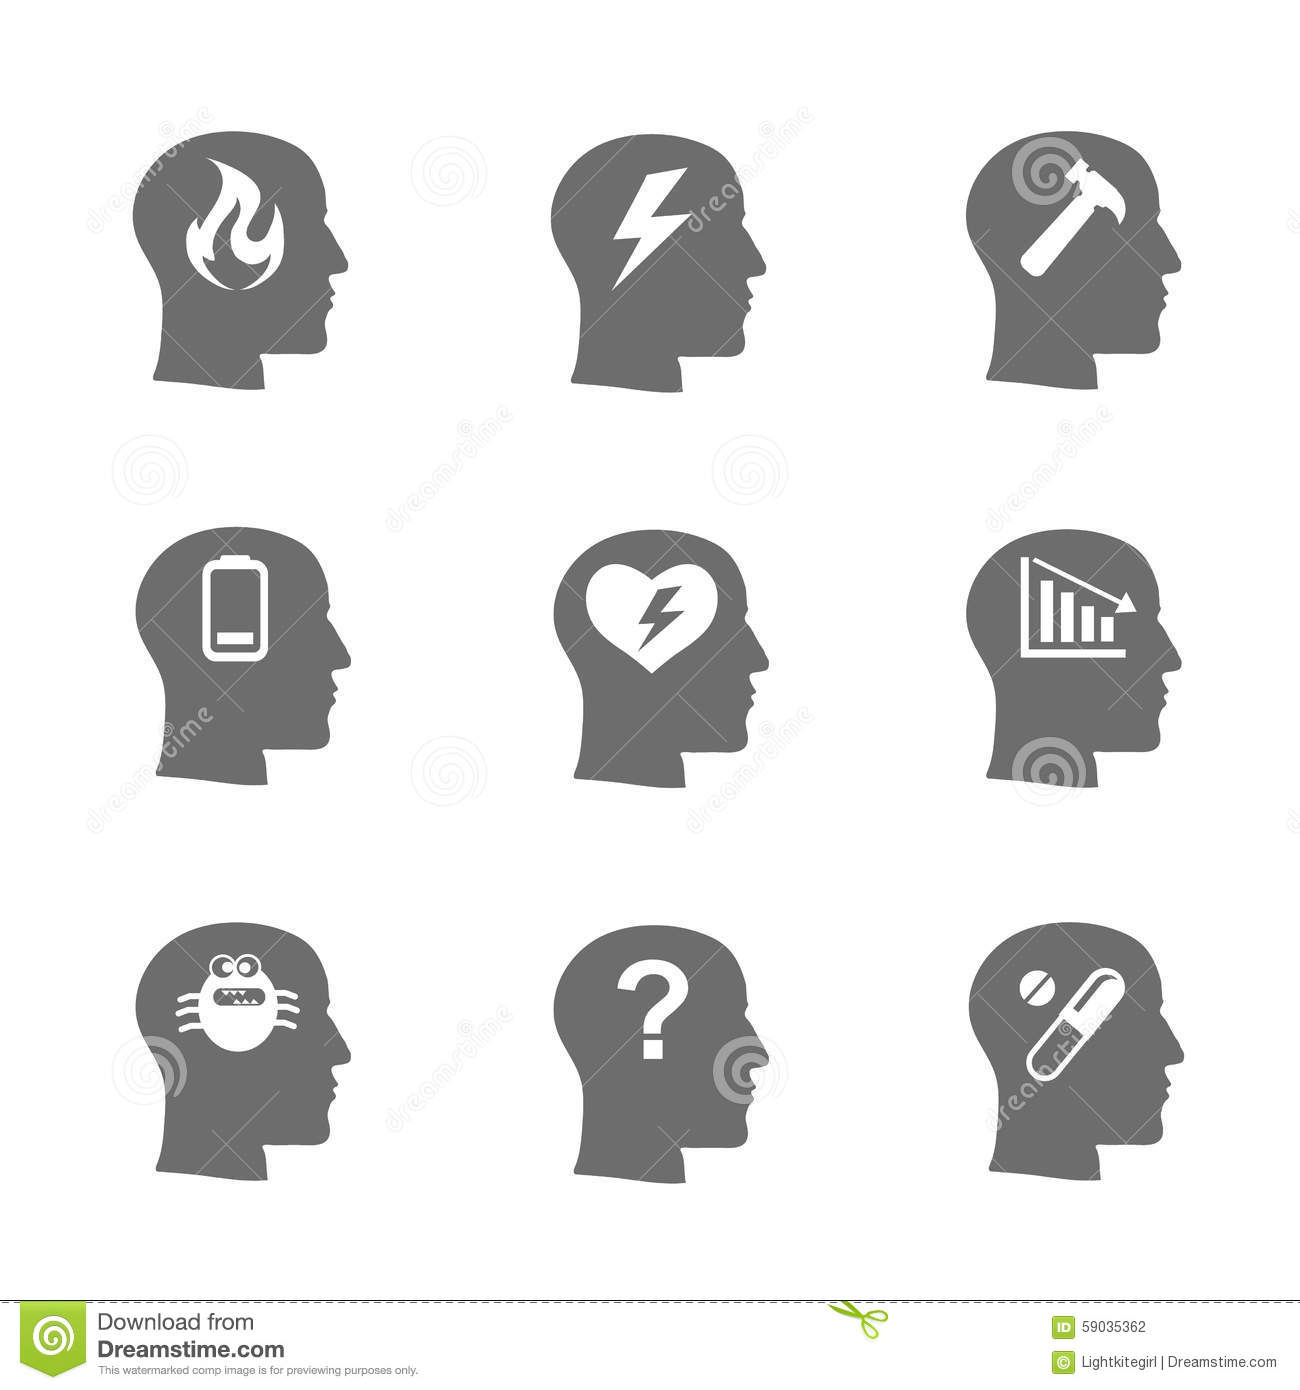 Mental stock illustrations 32769 mental stock illustrations mental health icons set stress concept mental health icons set stress concept biocorpaavc Gallery